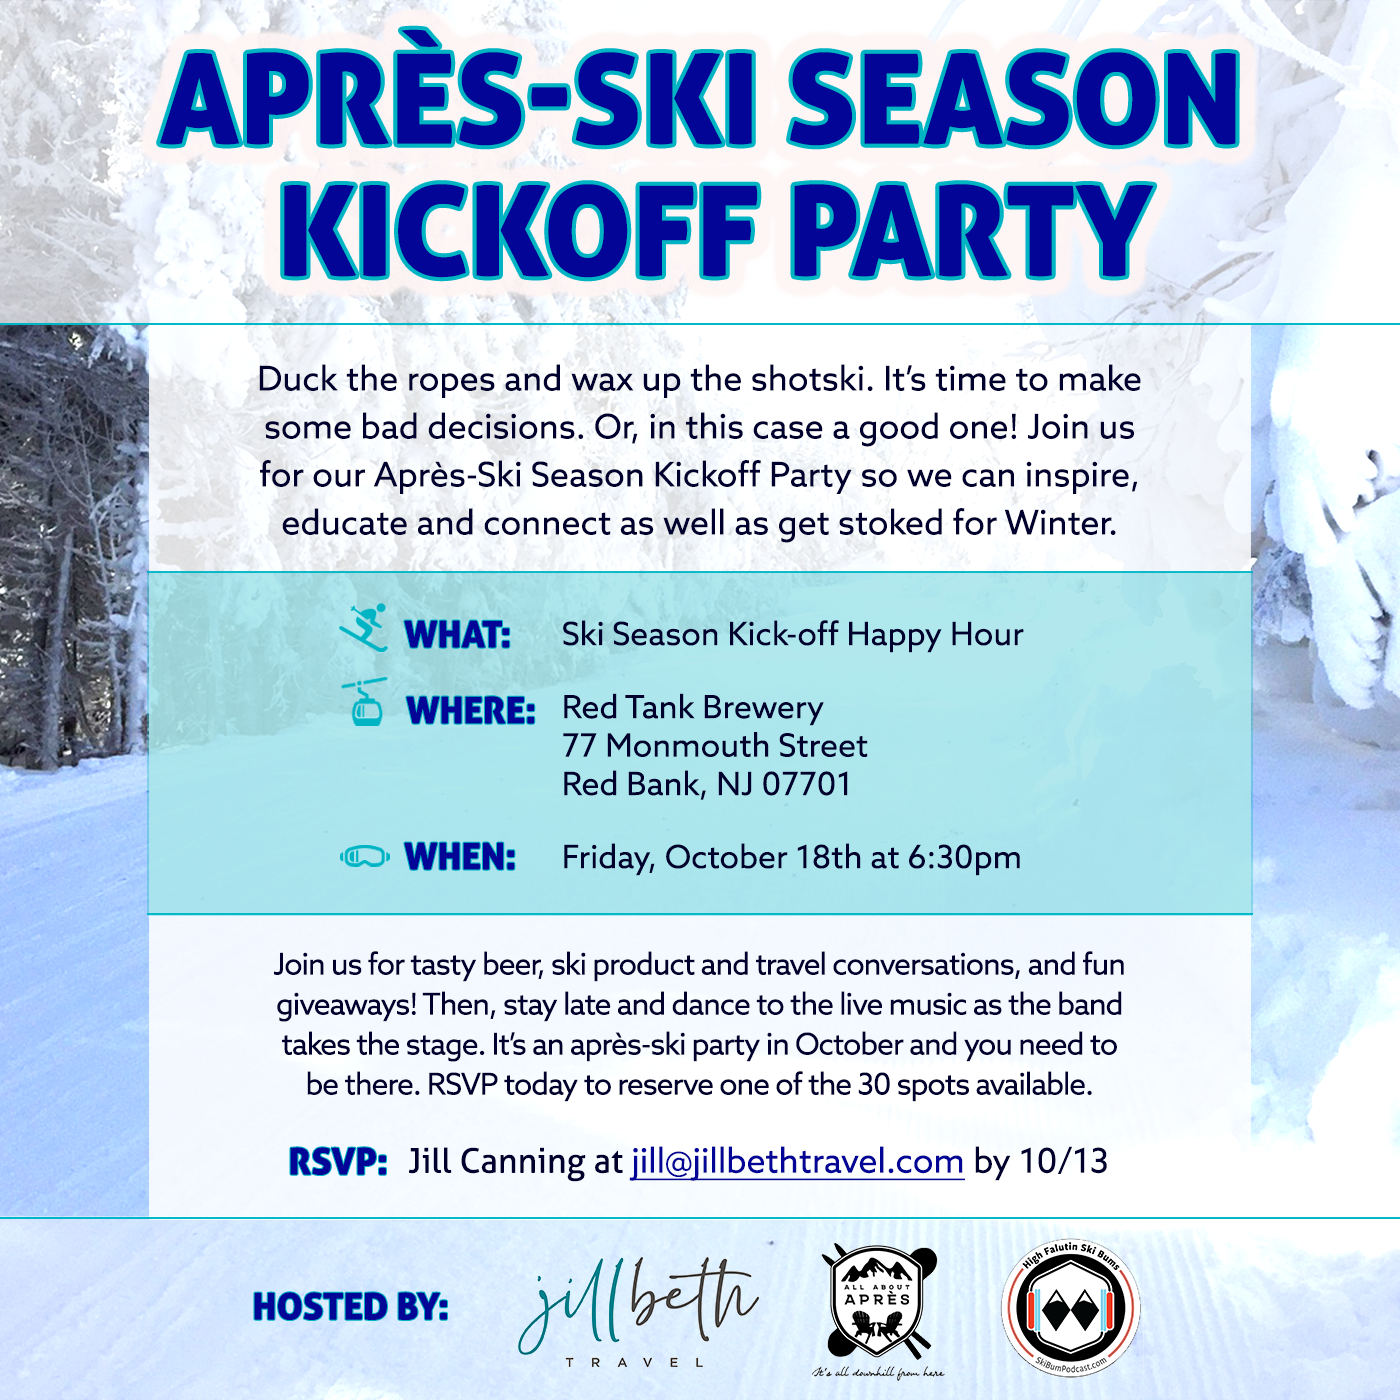 Apres-Ski Season Kickoff Party – October 18th, Red Bank, NJ